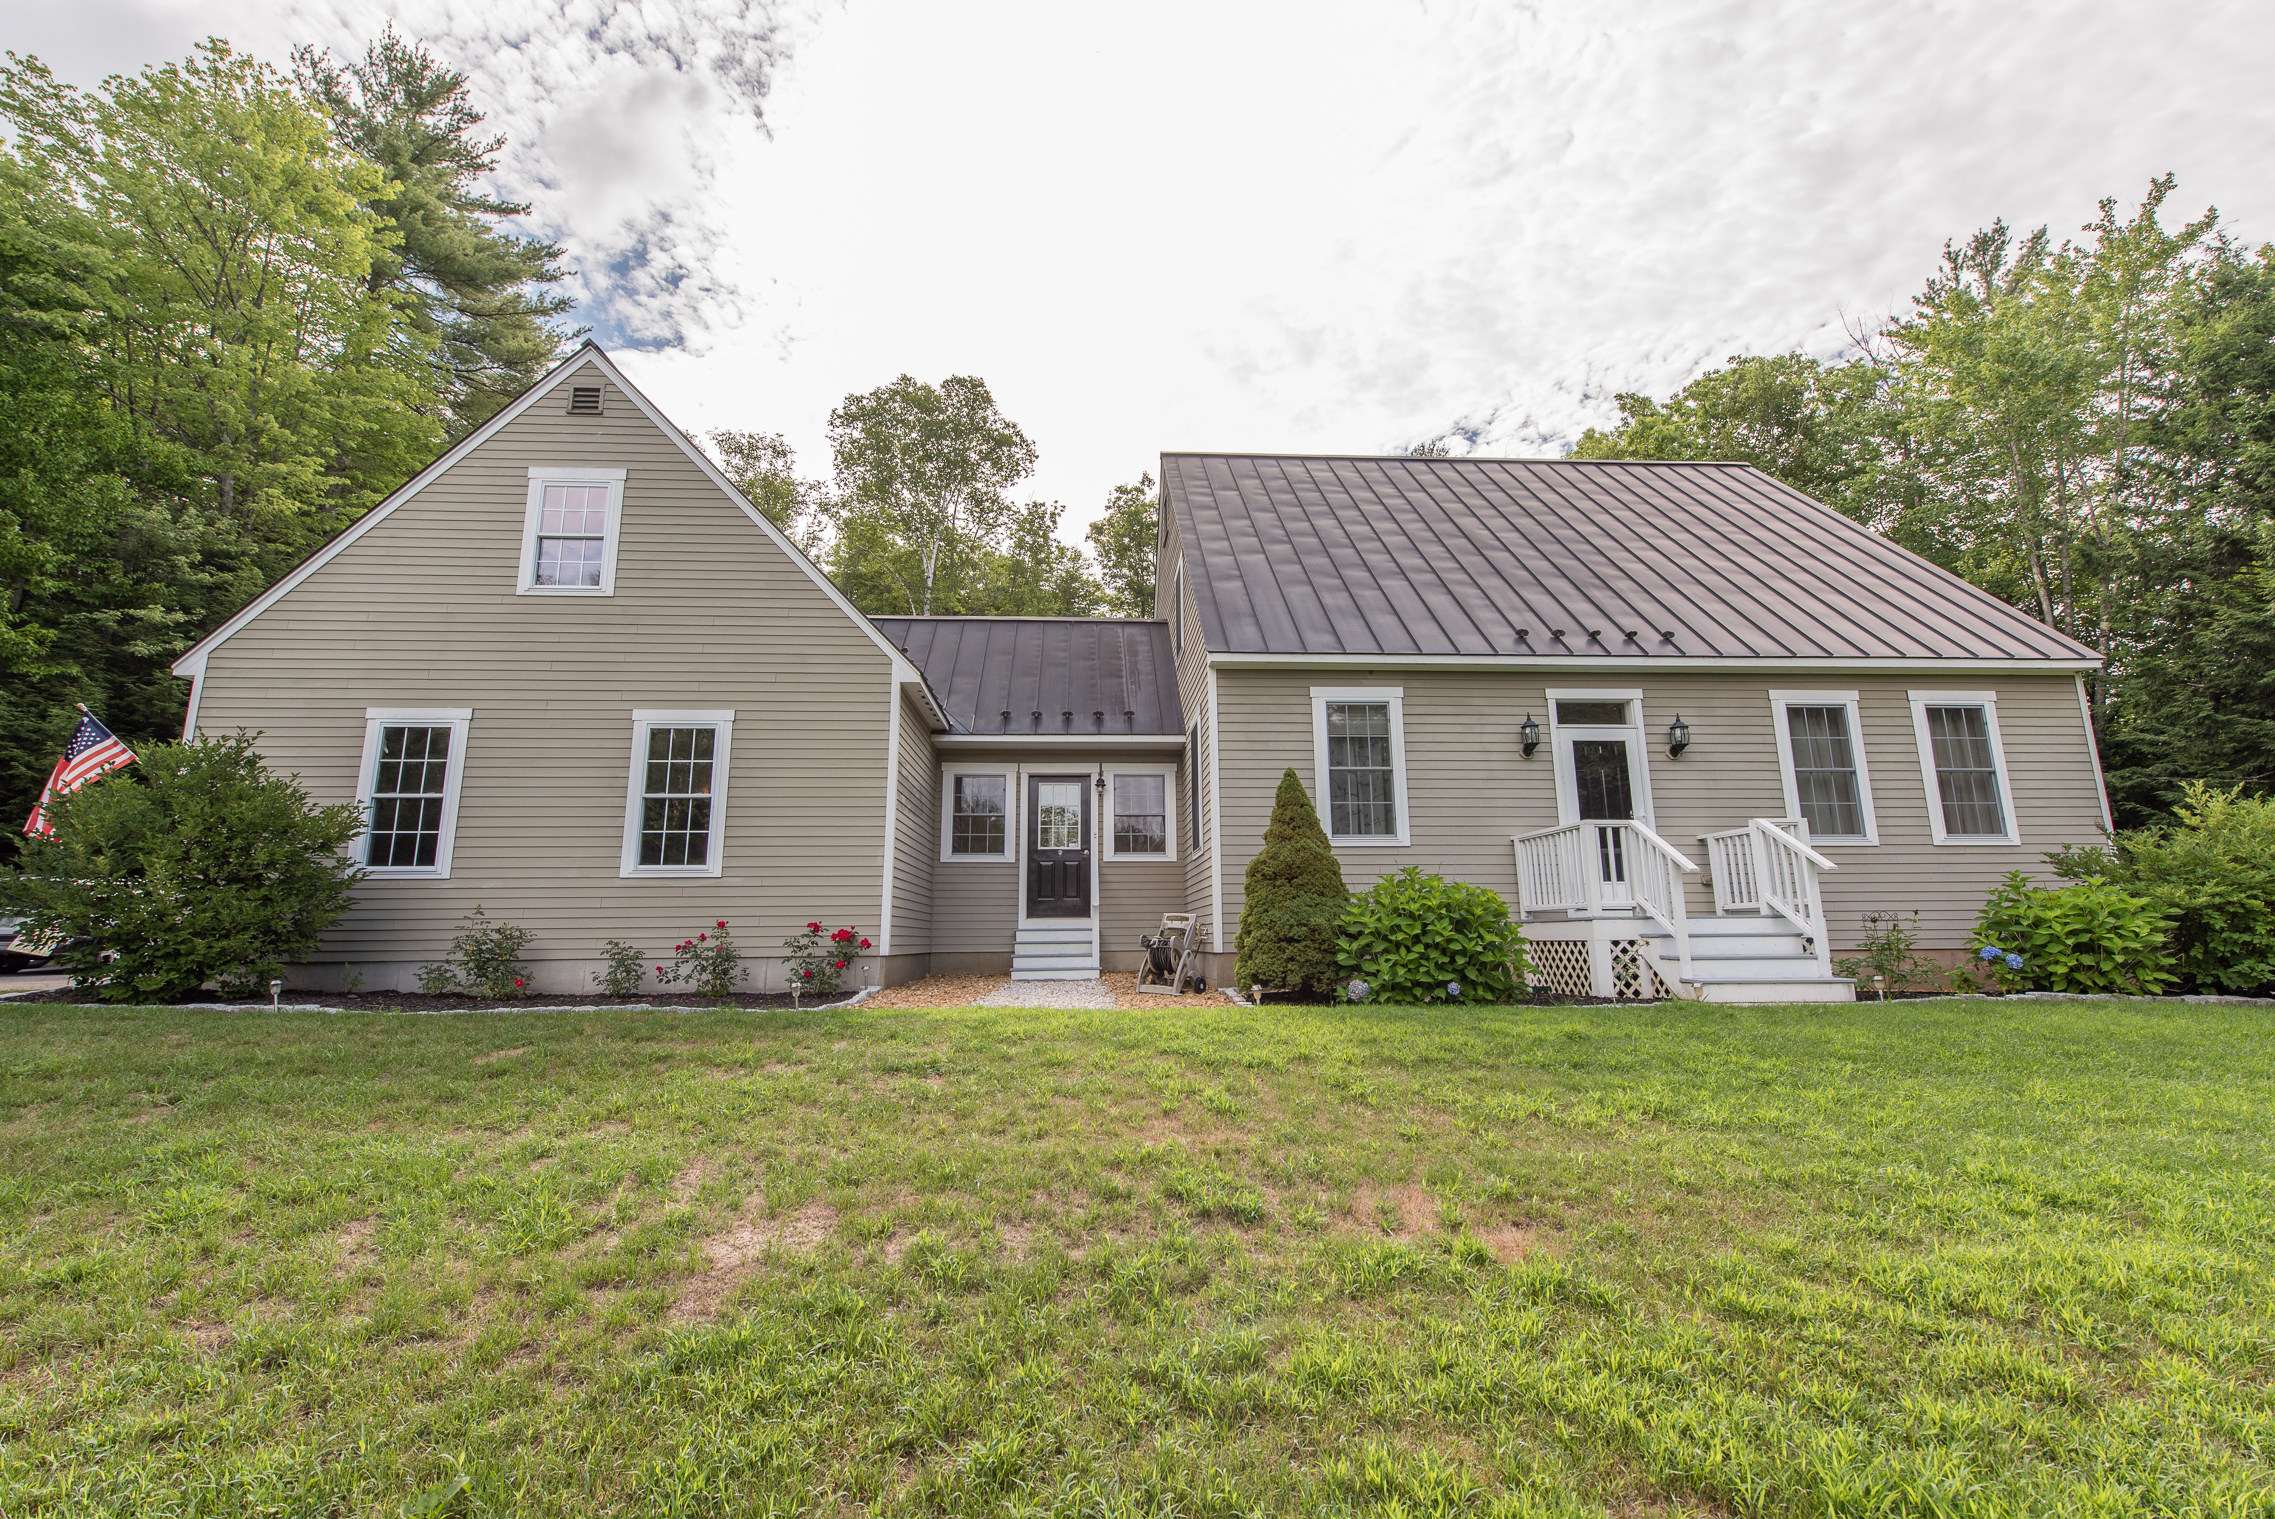 Single Family Home for Sale at 51 Skyview Cir, Meredith Meredith, New Hampshire, 03253 United States